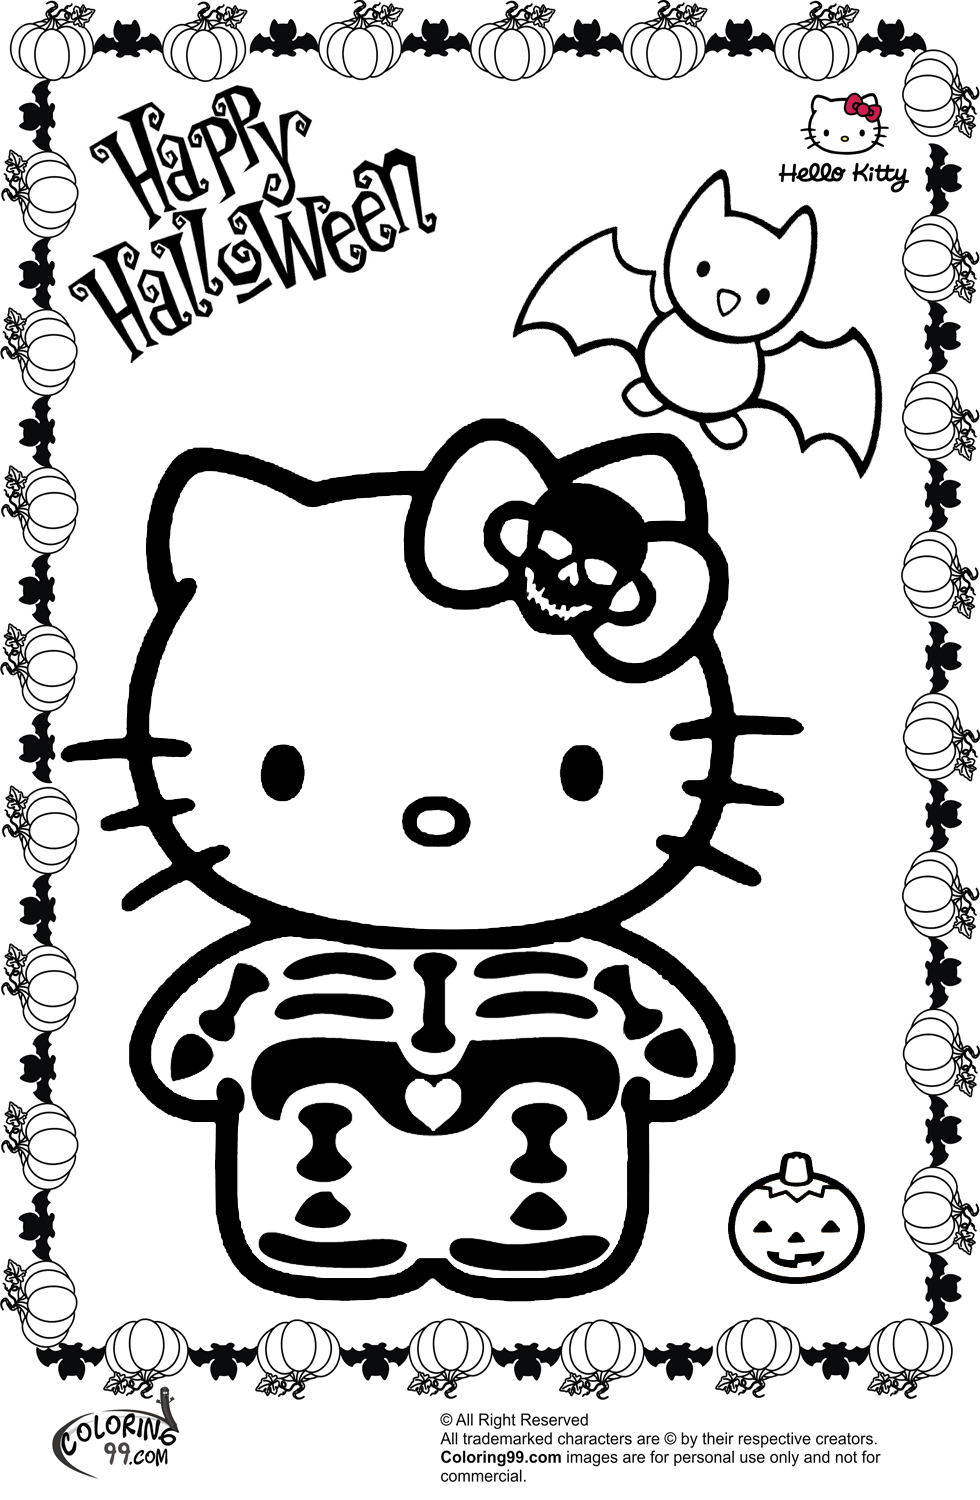 haloween coloring pages free printable halloween coloring pages for kids pages coloring haloween